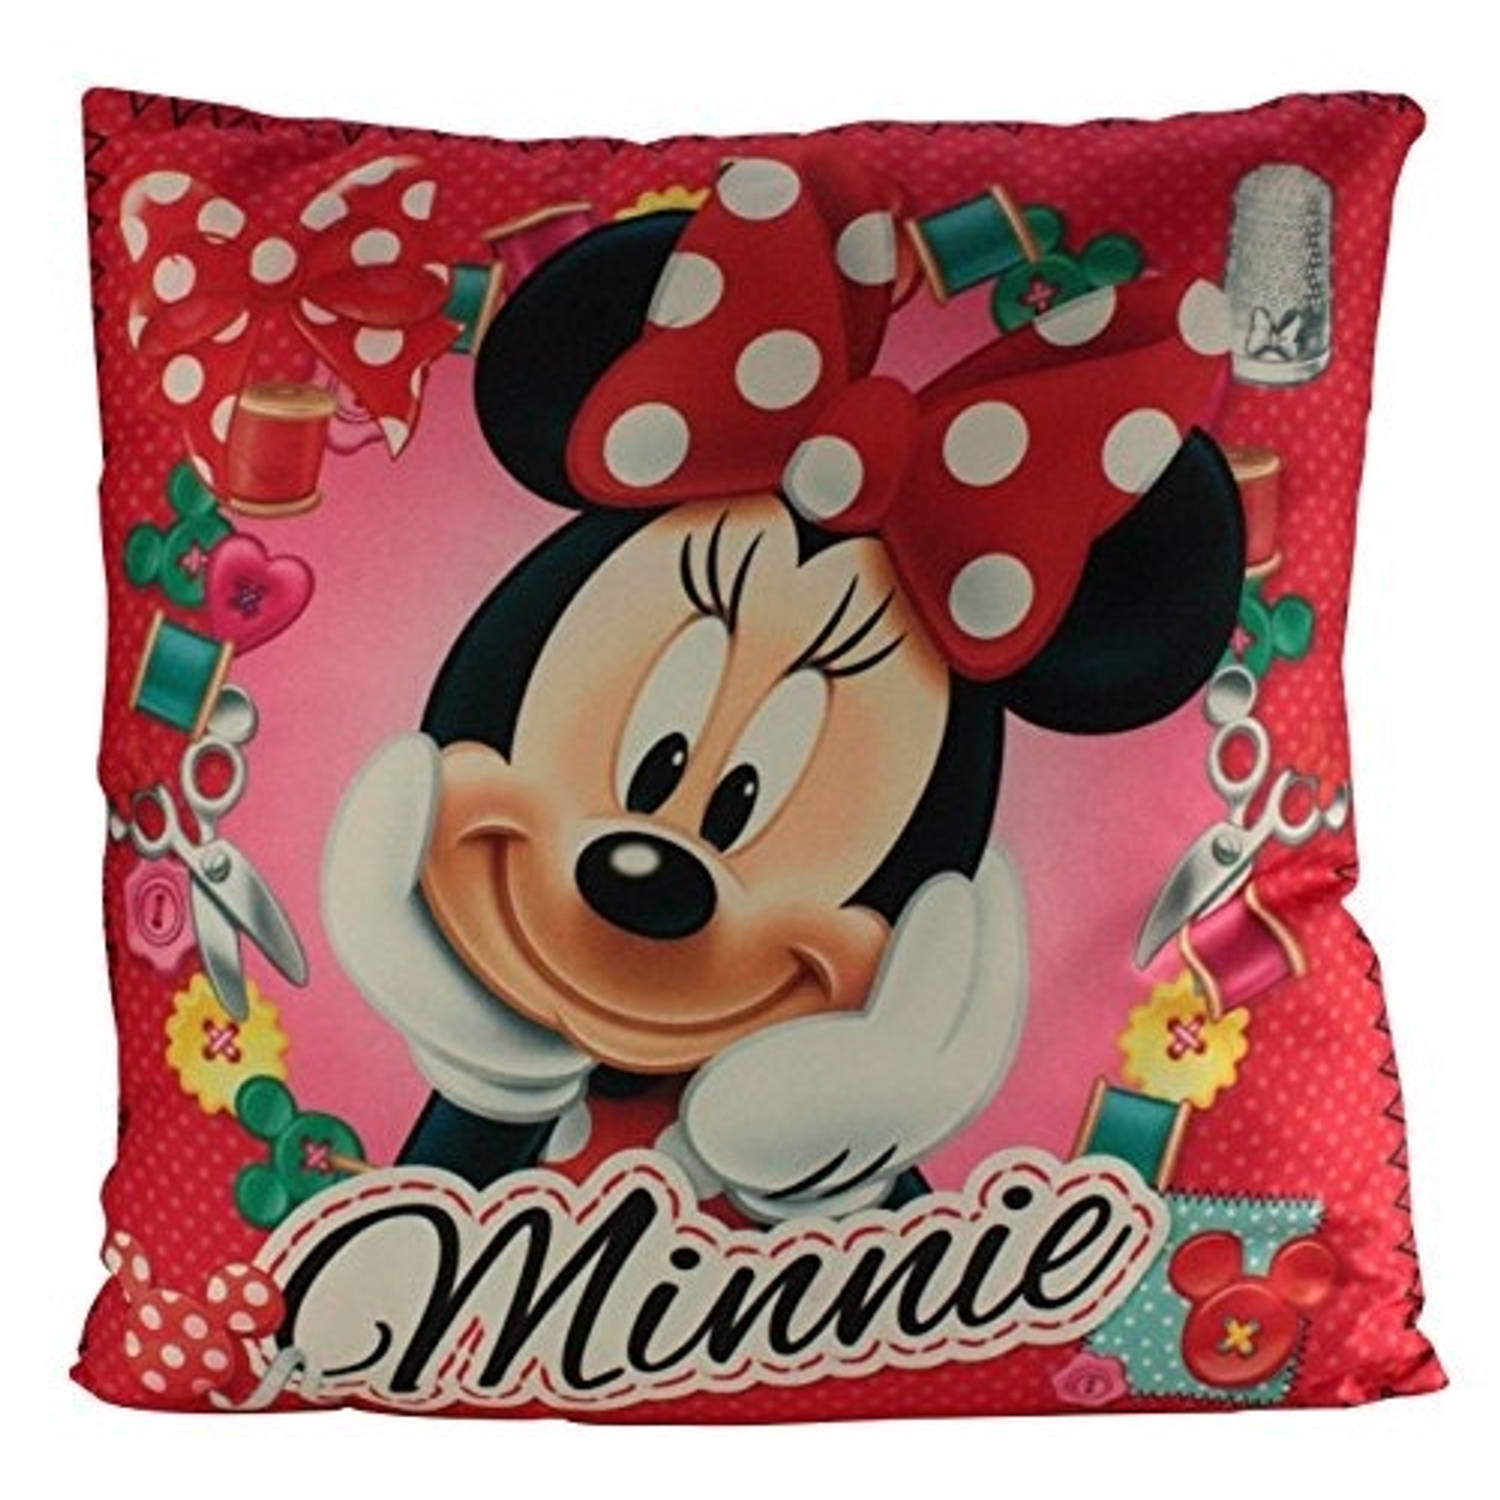 Disney kussen minnie mouse 35 x 35 cm polyester rood